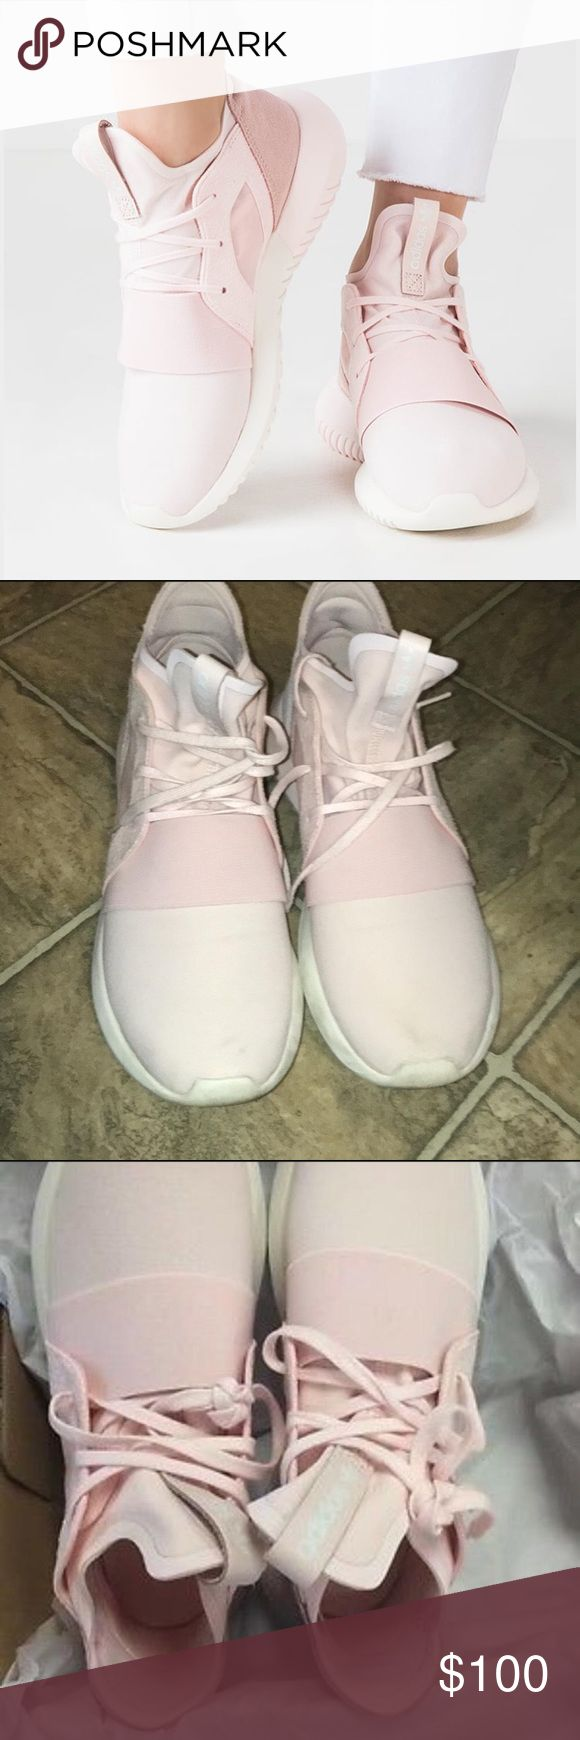 Adidas by Stella McCartney Tubular Defiant Snekers Tubular Defiant Halopink Sneakers! Used in great condition!  No damage on the shoes! Adidas by Stella McCartney Shoes Sneakers